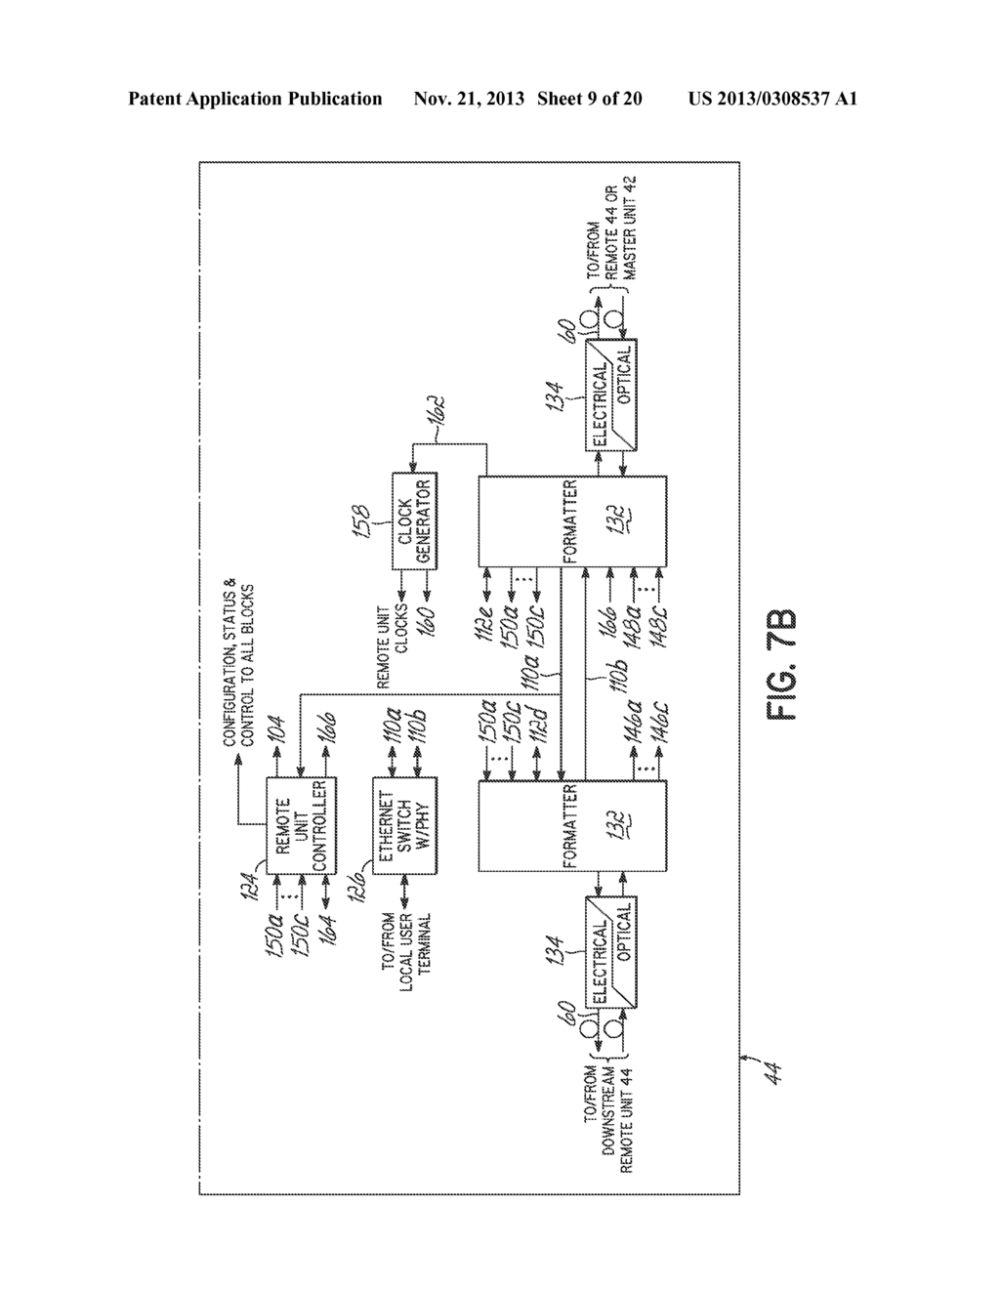 medium resolution of distributed antenna system for wireless network systems diagramdistributed antenna system for wireless network systems diagram